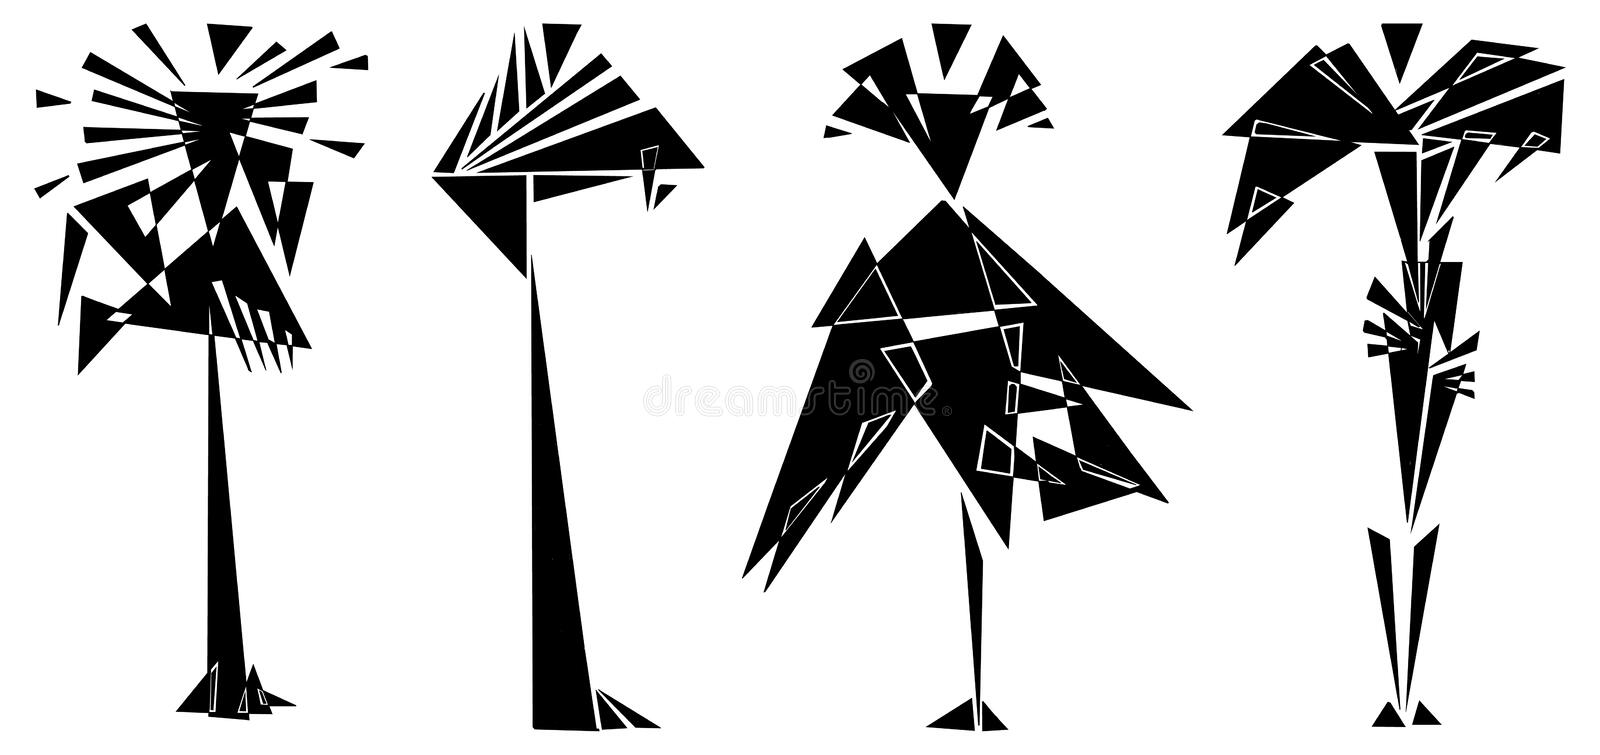 Silhouettes of fashion suits set in a geometric black and white style vector illustration